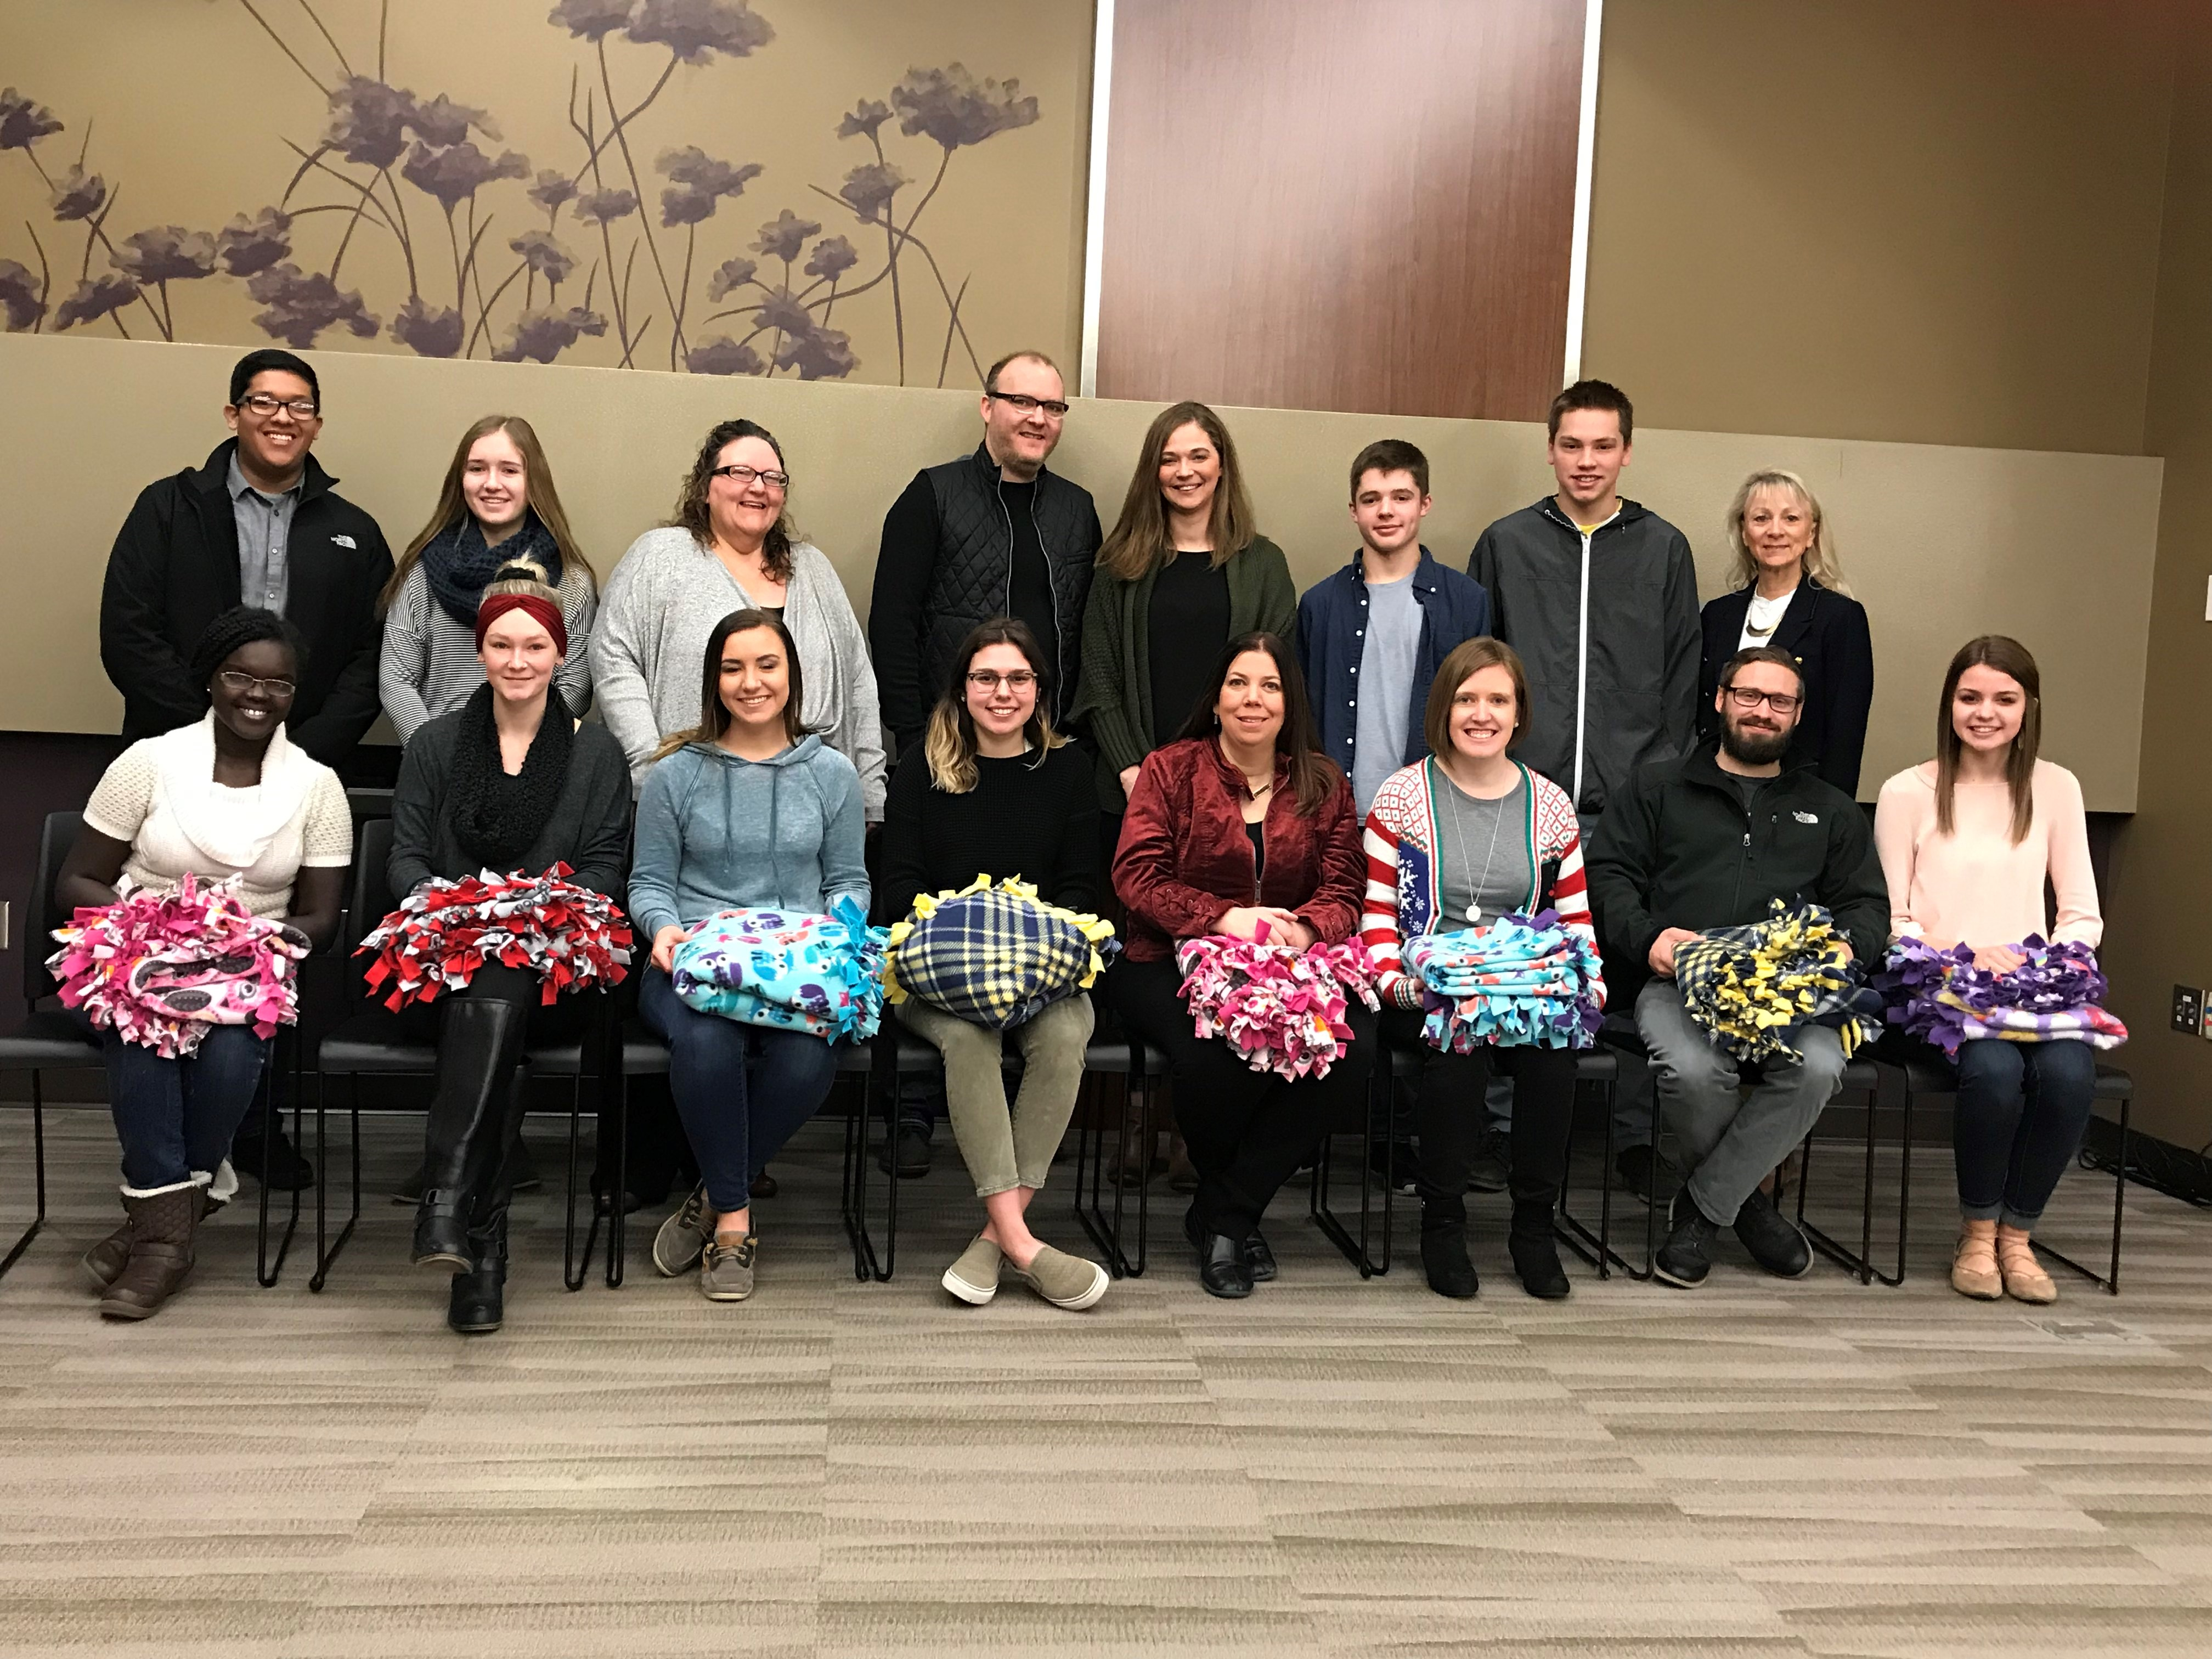 M State students make blankets for abuse victims